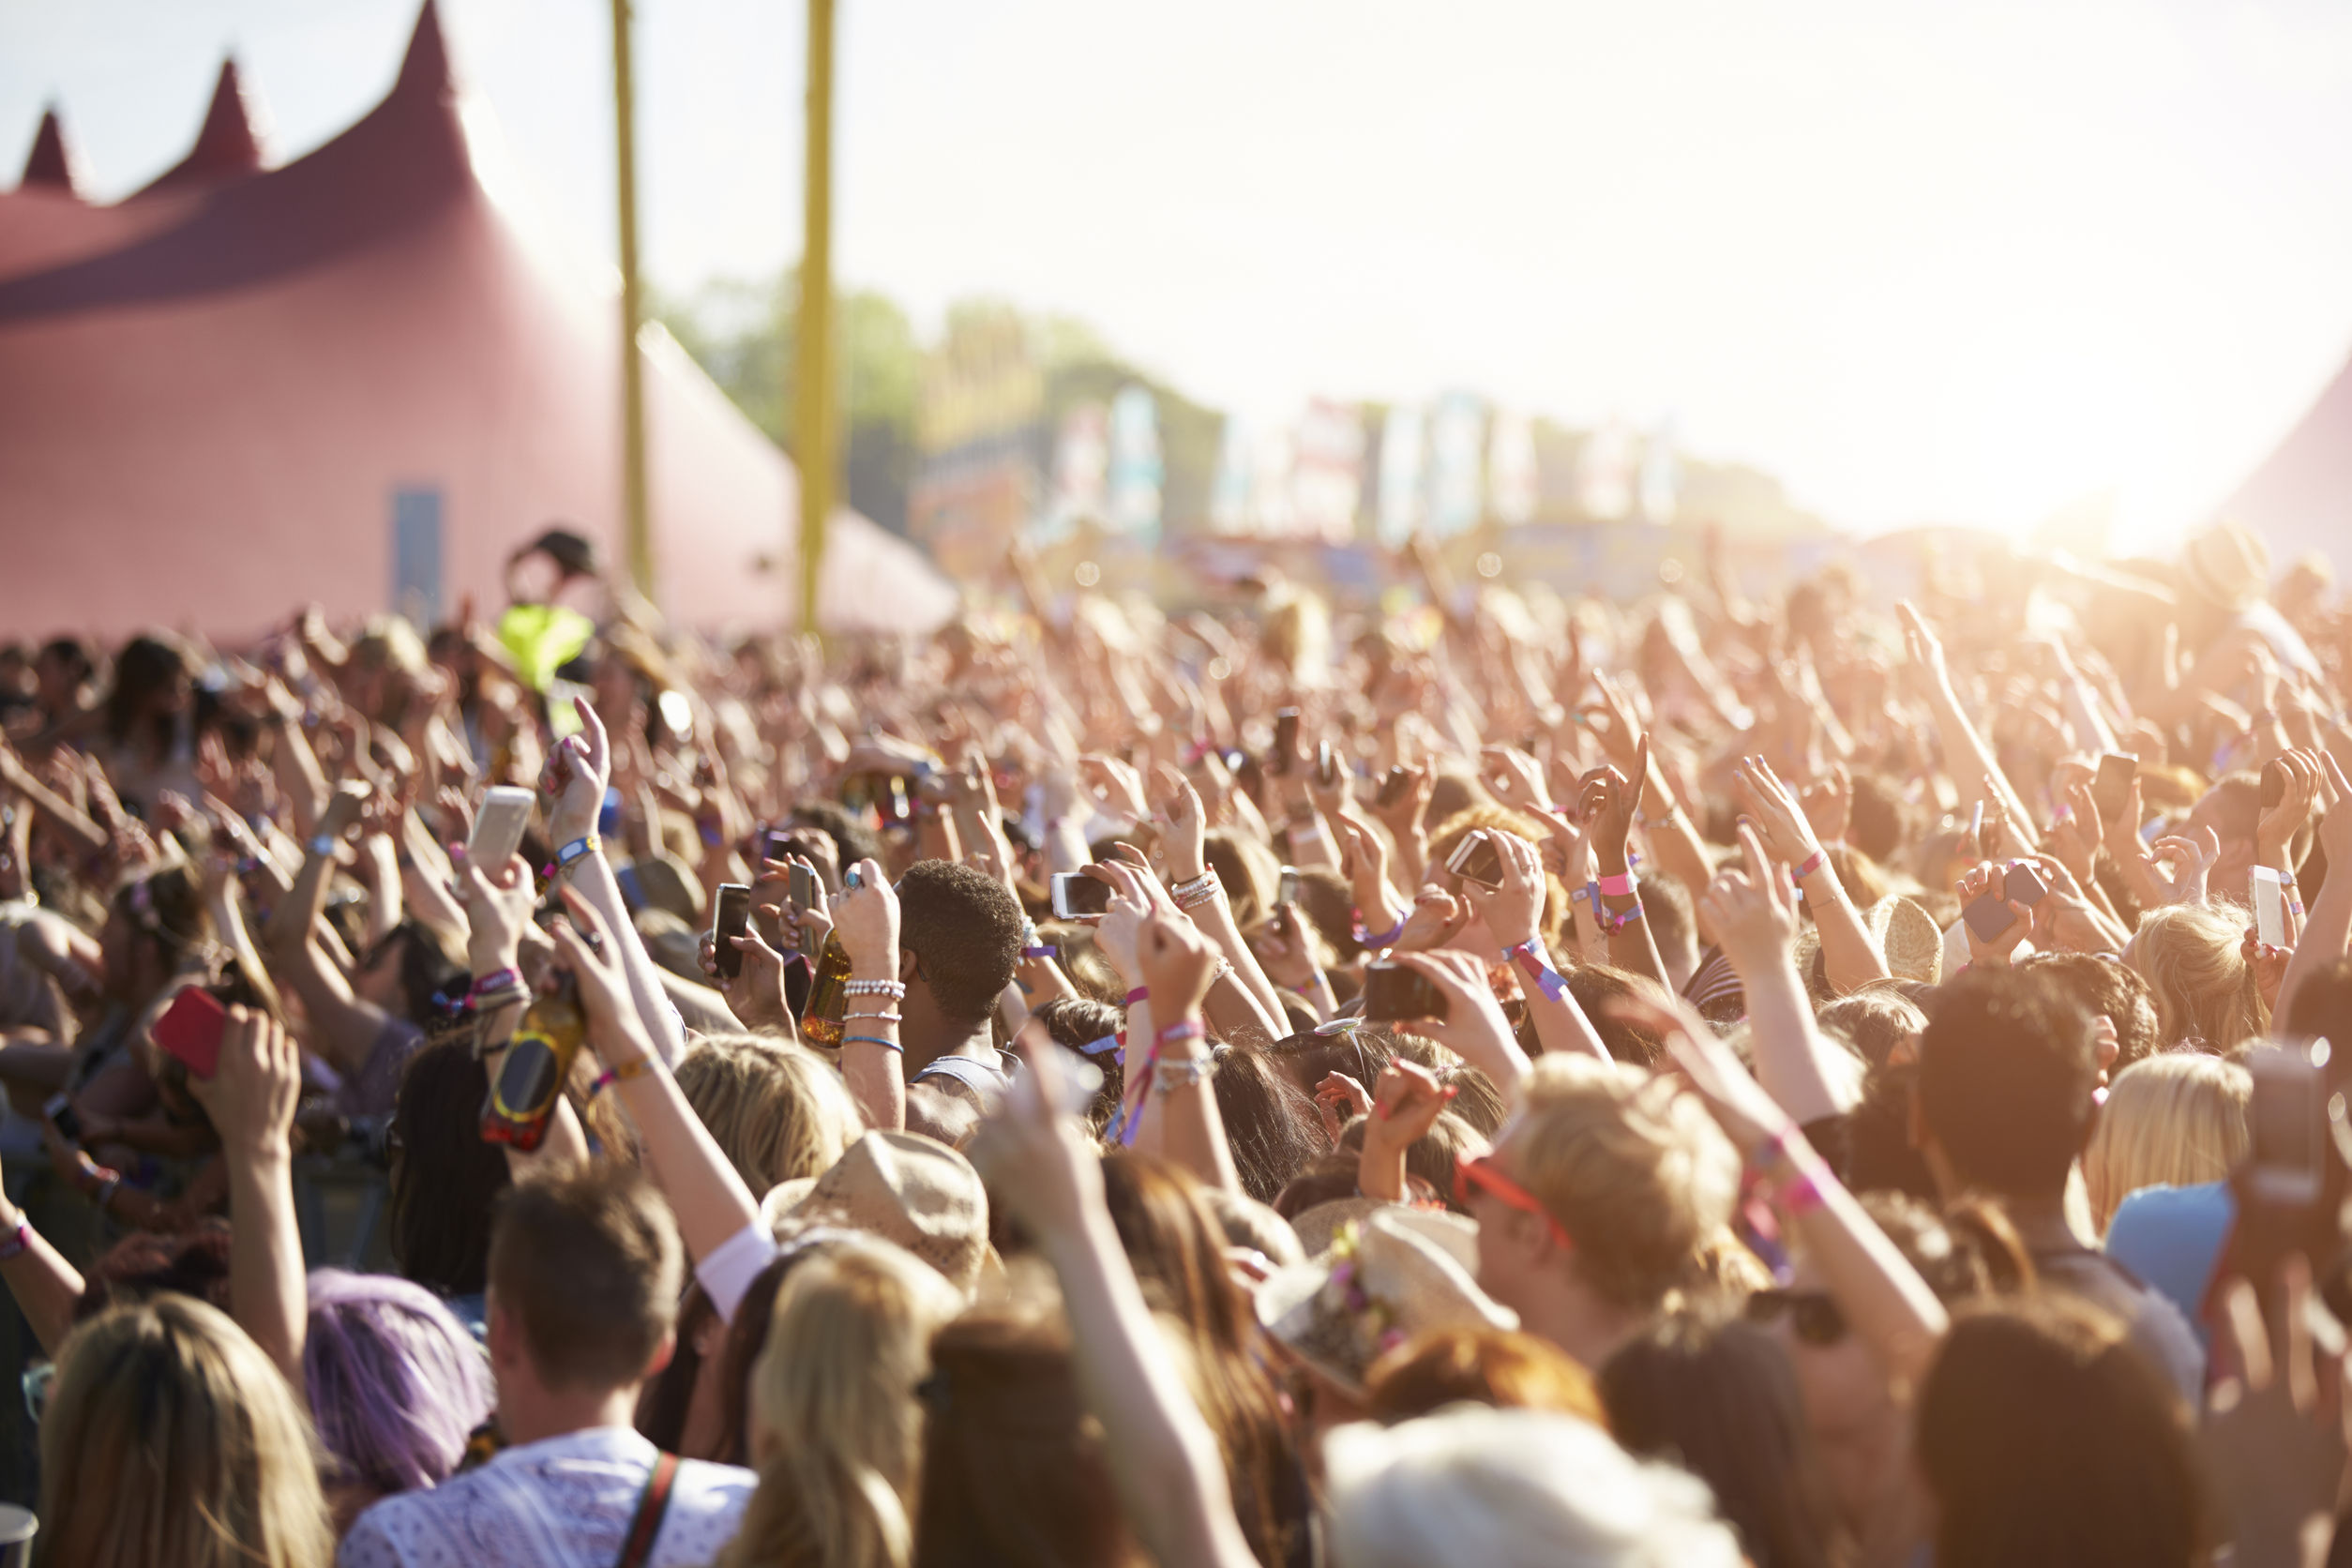 An image of an audience at an outdoor festival